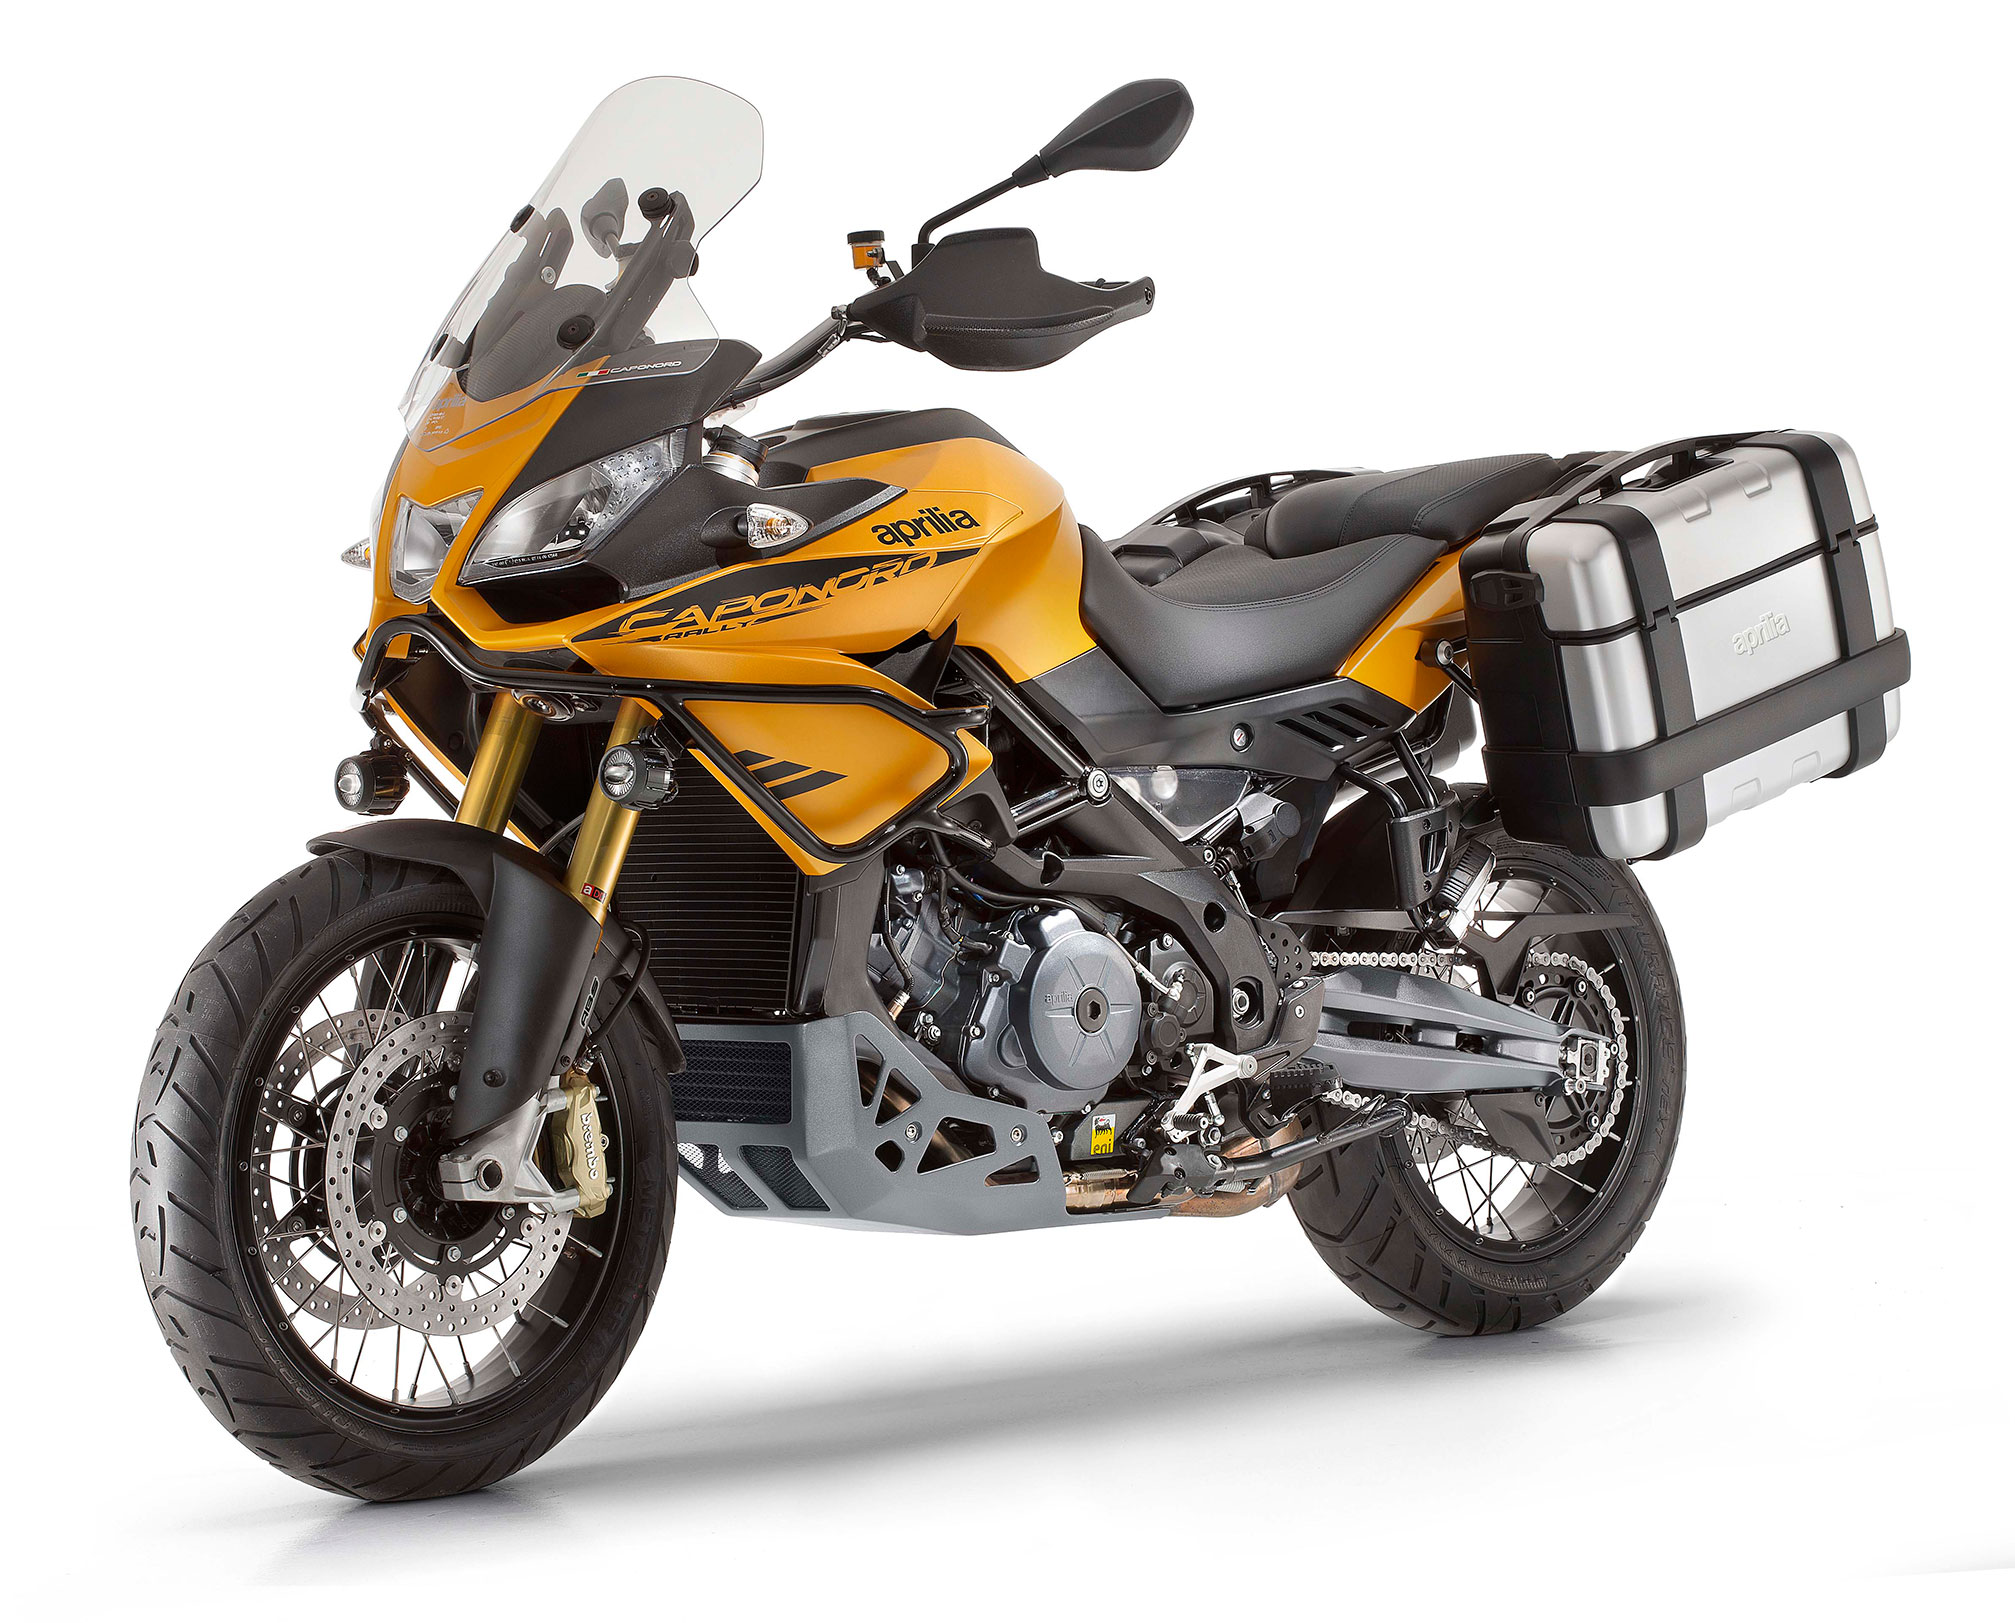 aprilia caponord 1200 abs rally specs 2014 2015 autoevolution. Black Bedroom Furniture Sets. Home Design Ideas